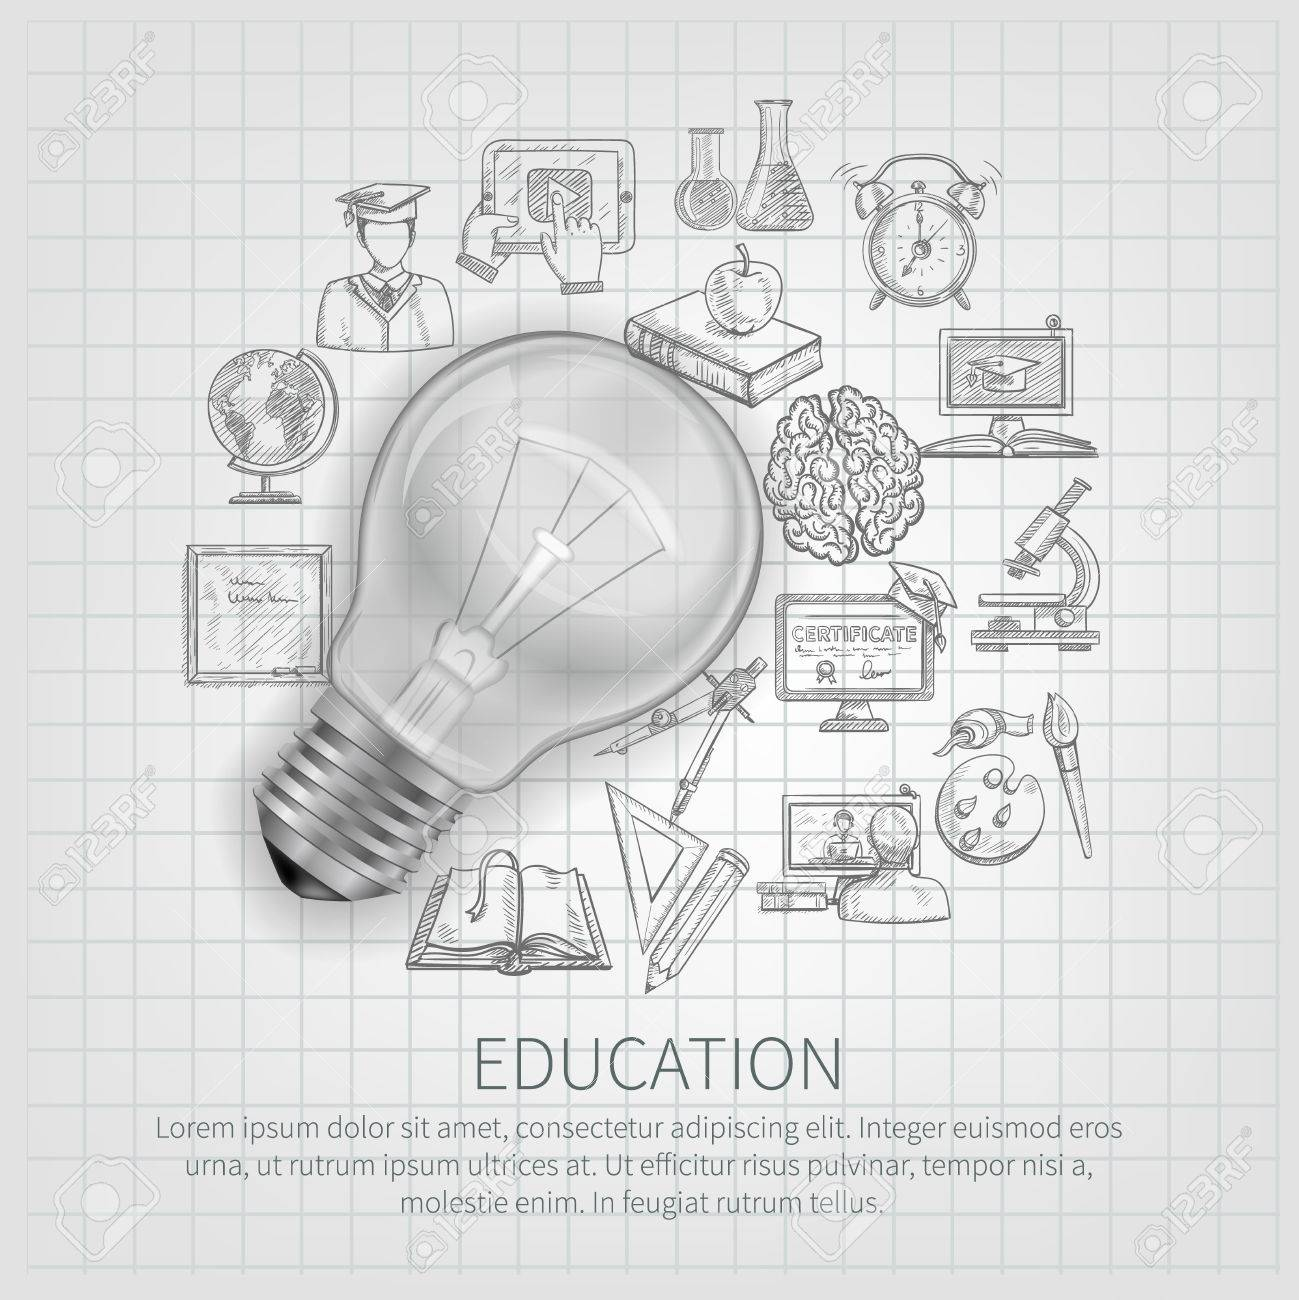 education concept with learning sketch icons and realistic lightbulb